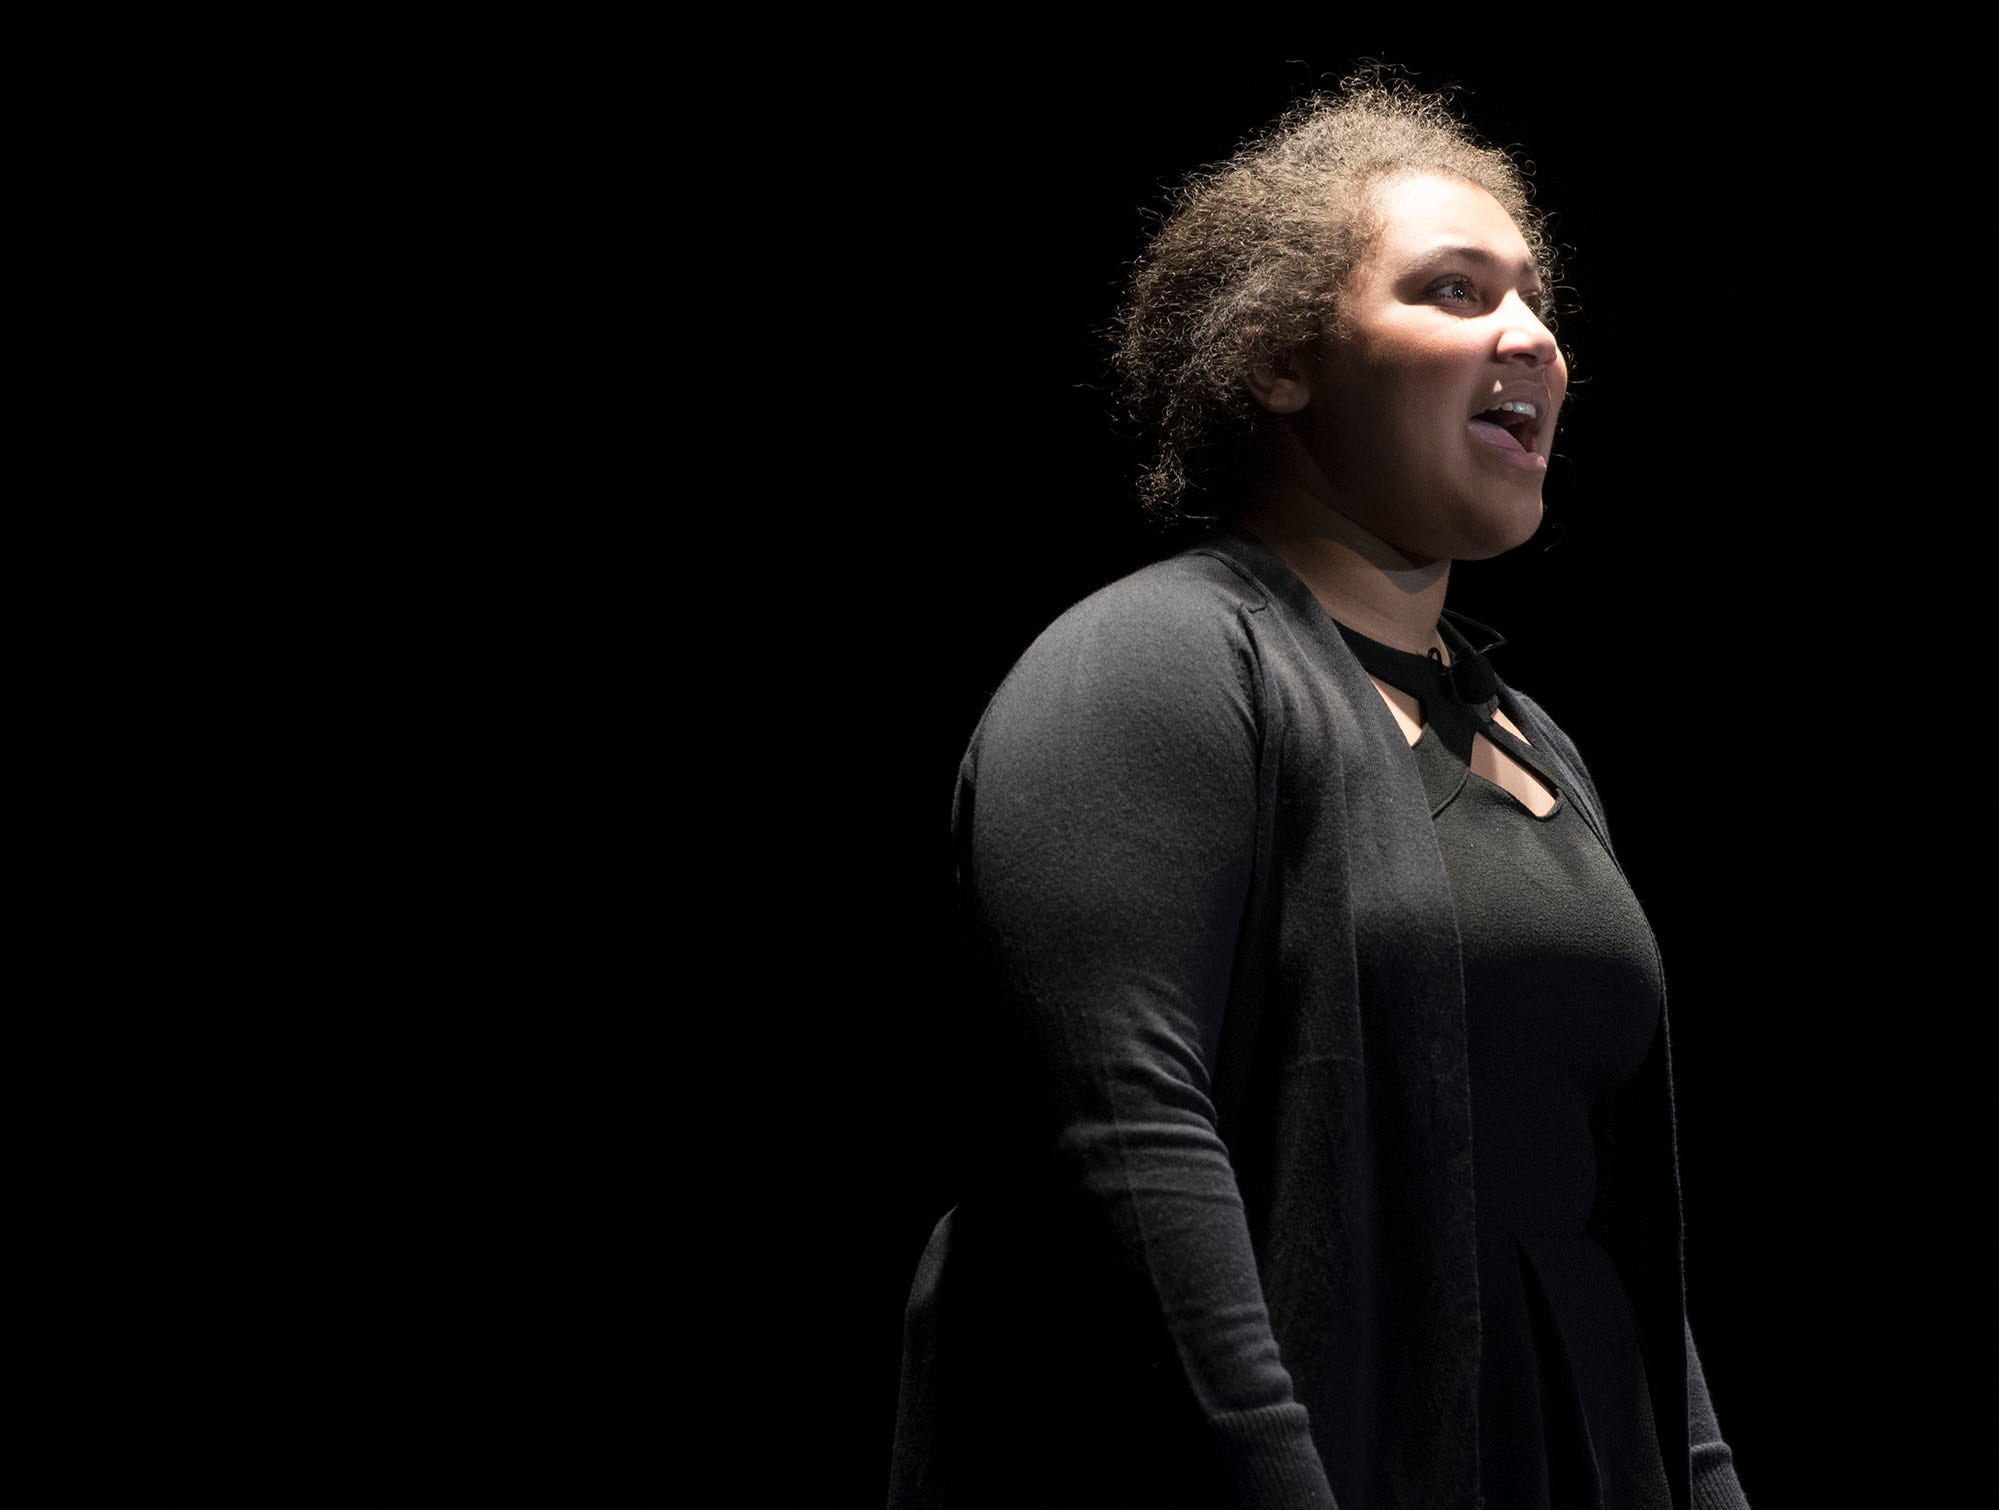 Elyssa Thomas sings a solo during dress rehearsal. The CASHS Drama Club (in cooperation with Music Theatre International) will be performing Songs for a New World By Jason Robert Brown on Friday, November 9, 2018 at 7:30 PM and Saturday, November 10, 2018 at 2:30 and 7:30 PM. 